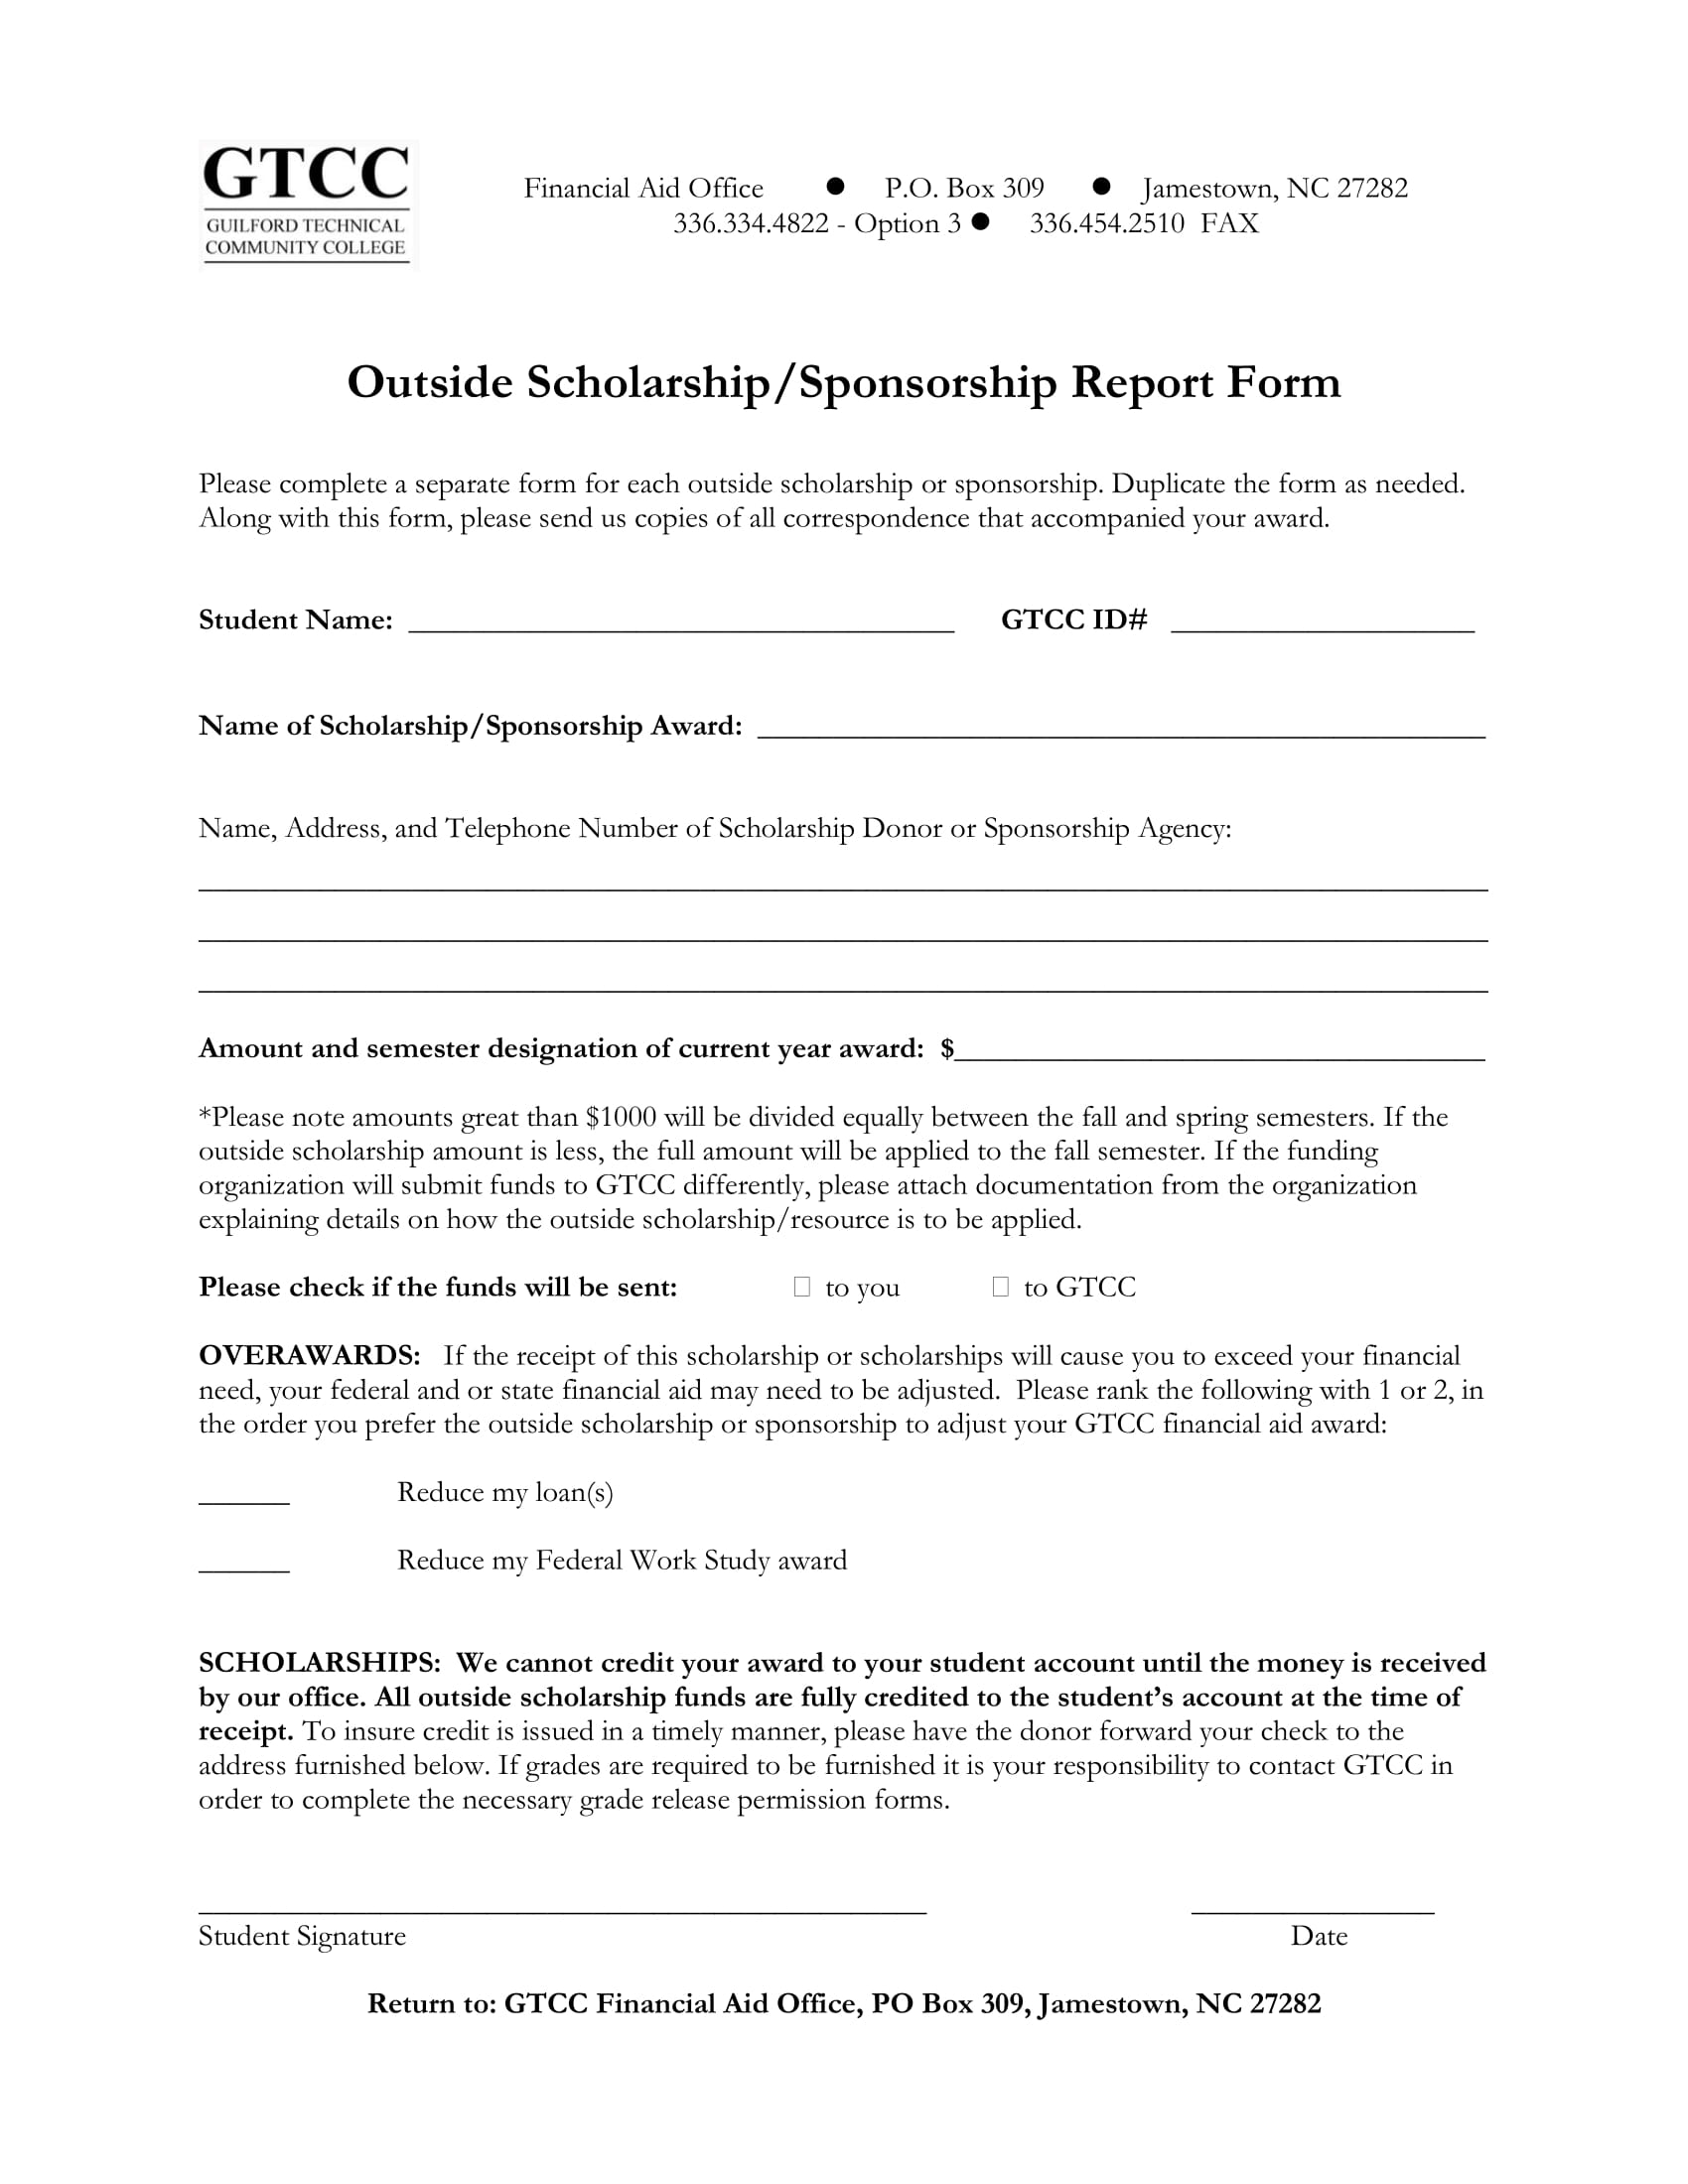 scholarship or sponsorship report form 1